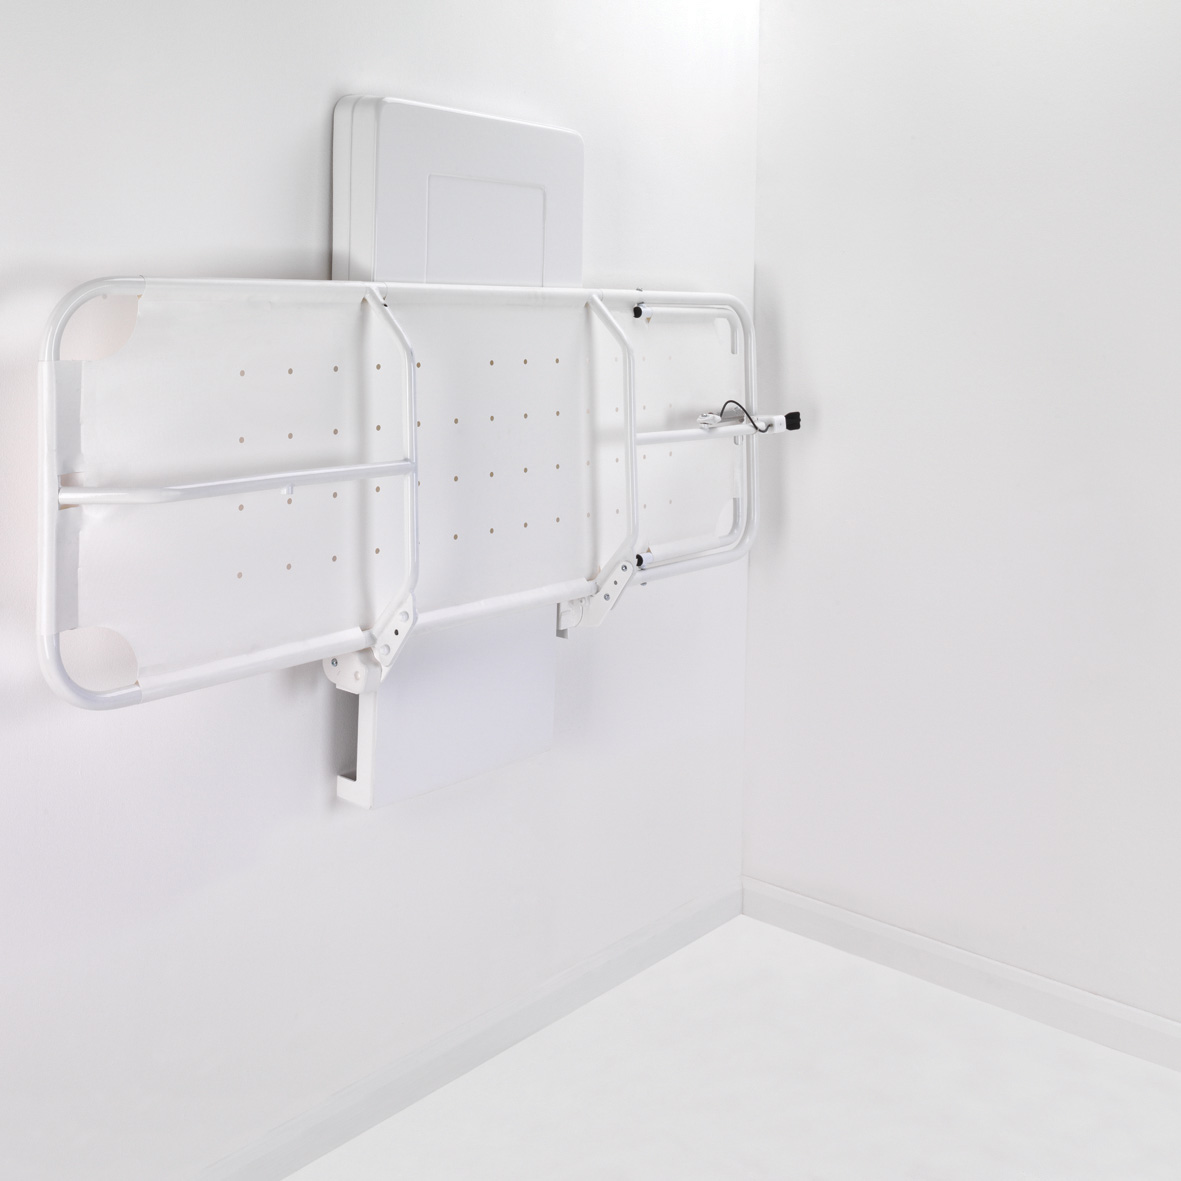 easi-lift shower stretcher and changing bench - Smirthwaite